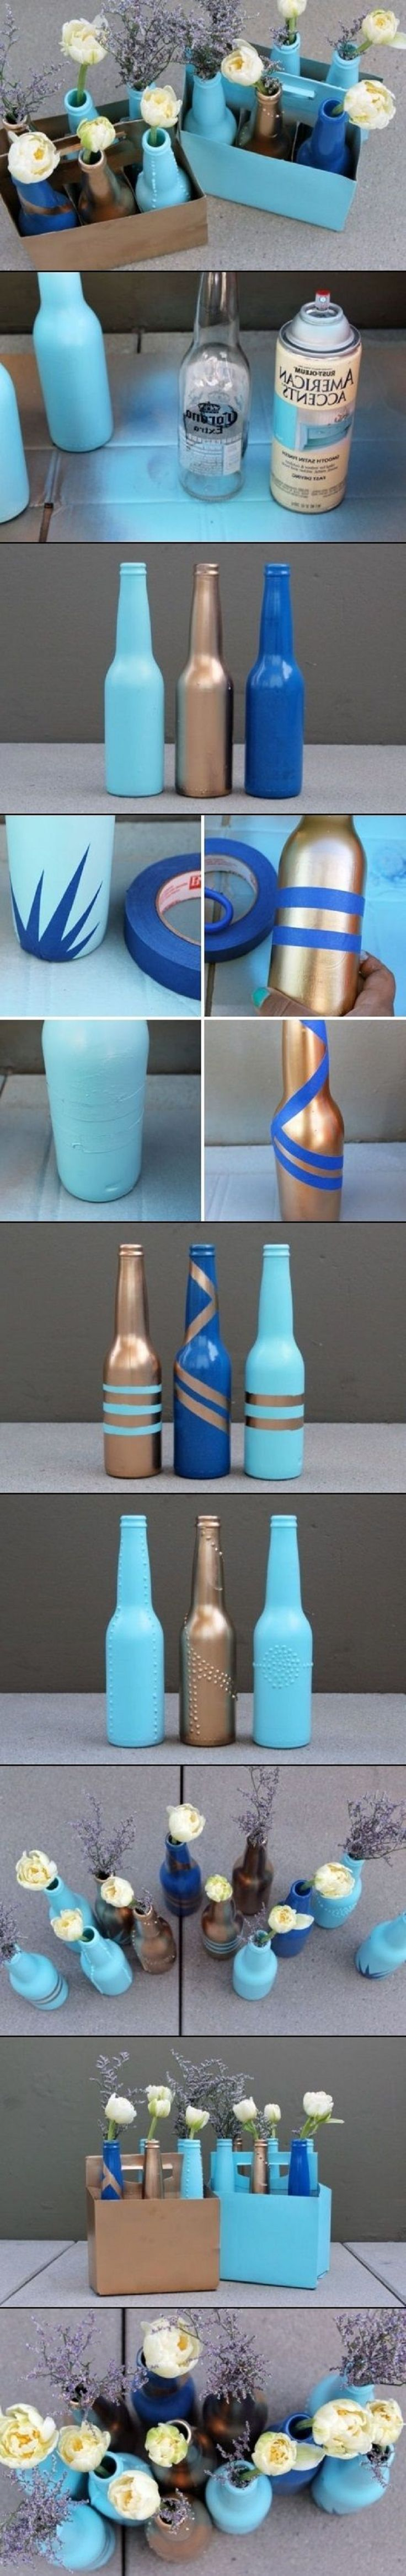 craft ideas for beer bottles 445 best images about diy wine bottle crafts on 6132